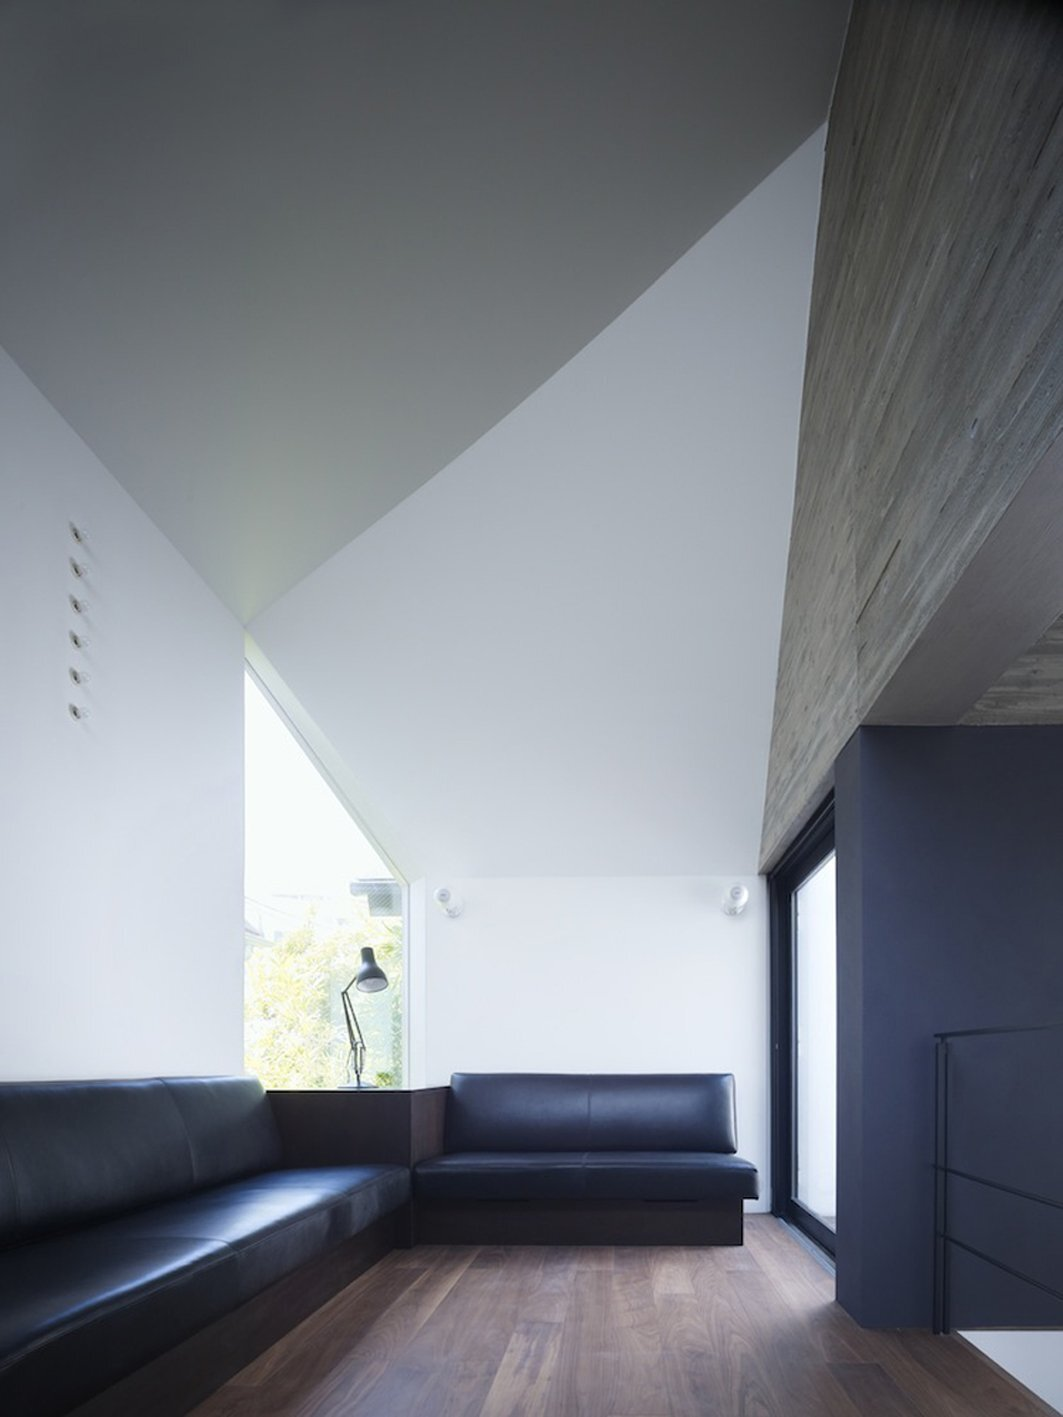 Shirokane House by MDS - Tokyo - Japan - Small House - Living Room - Humble Homes